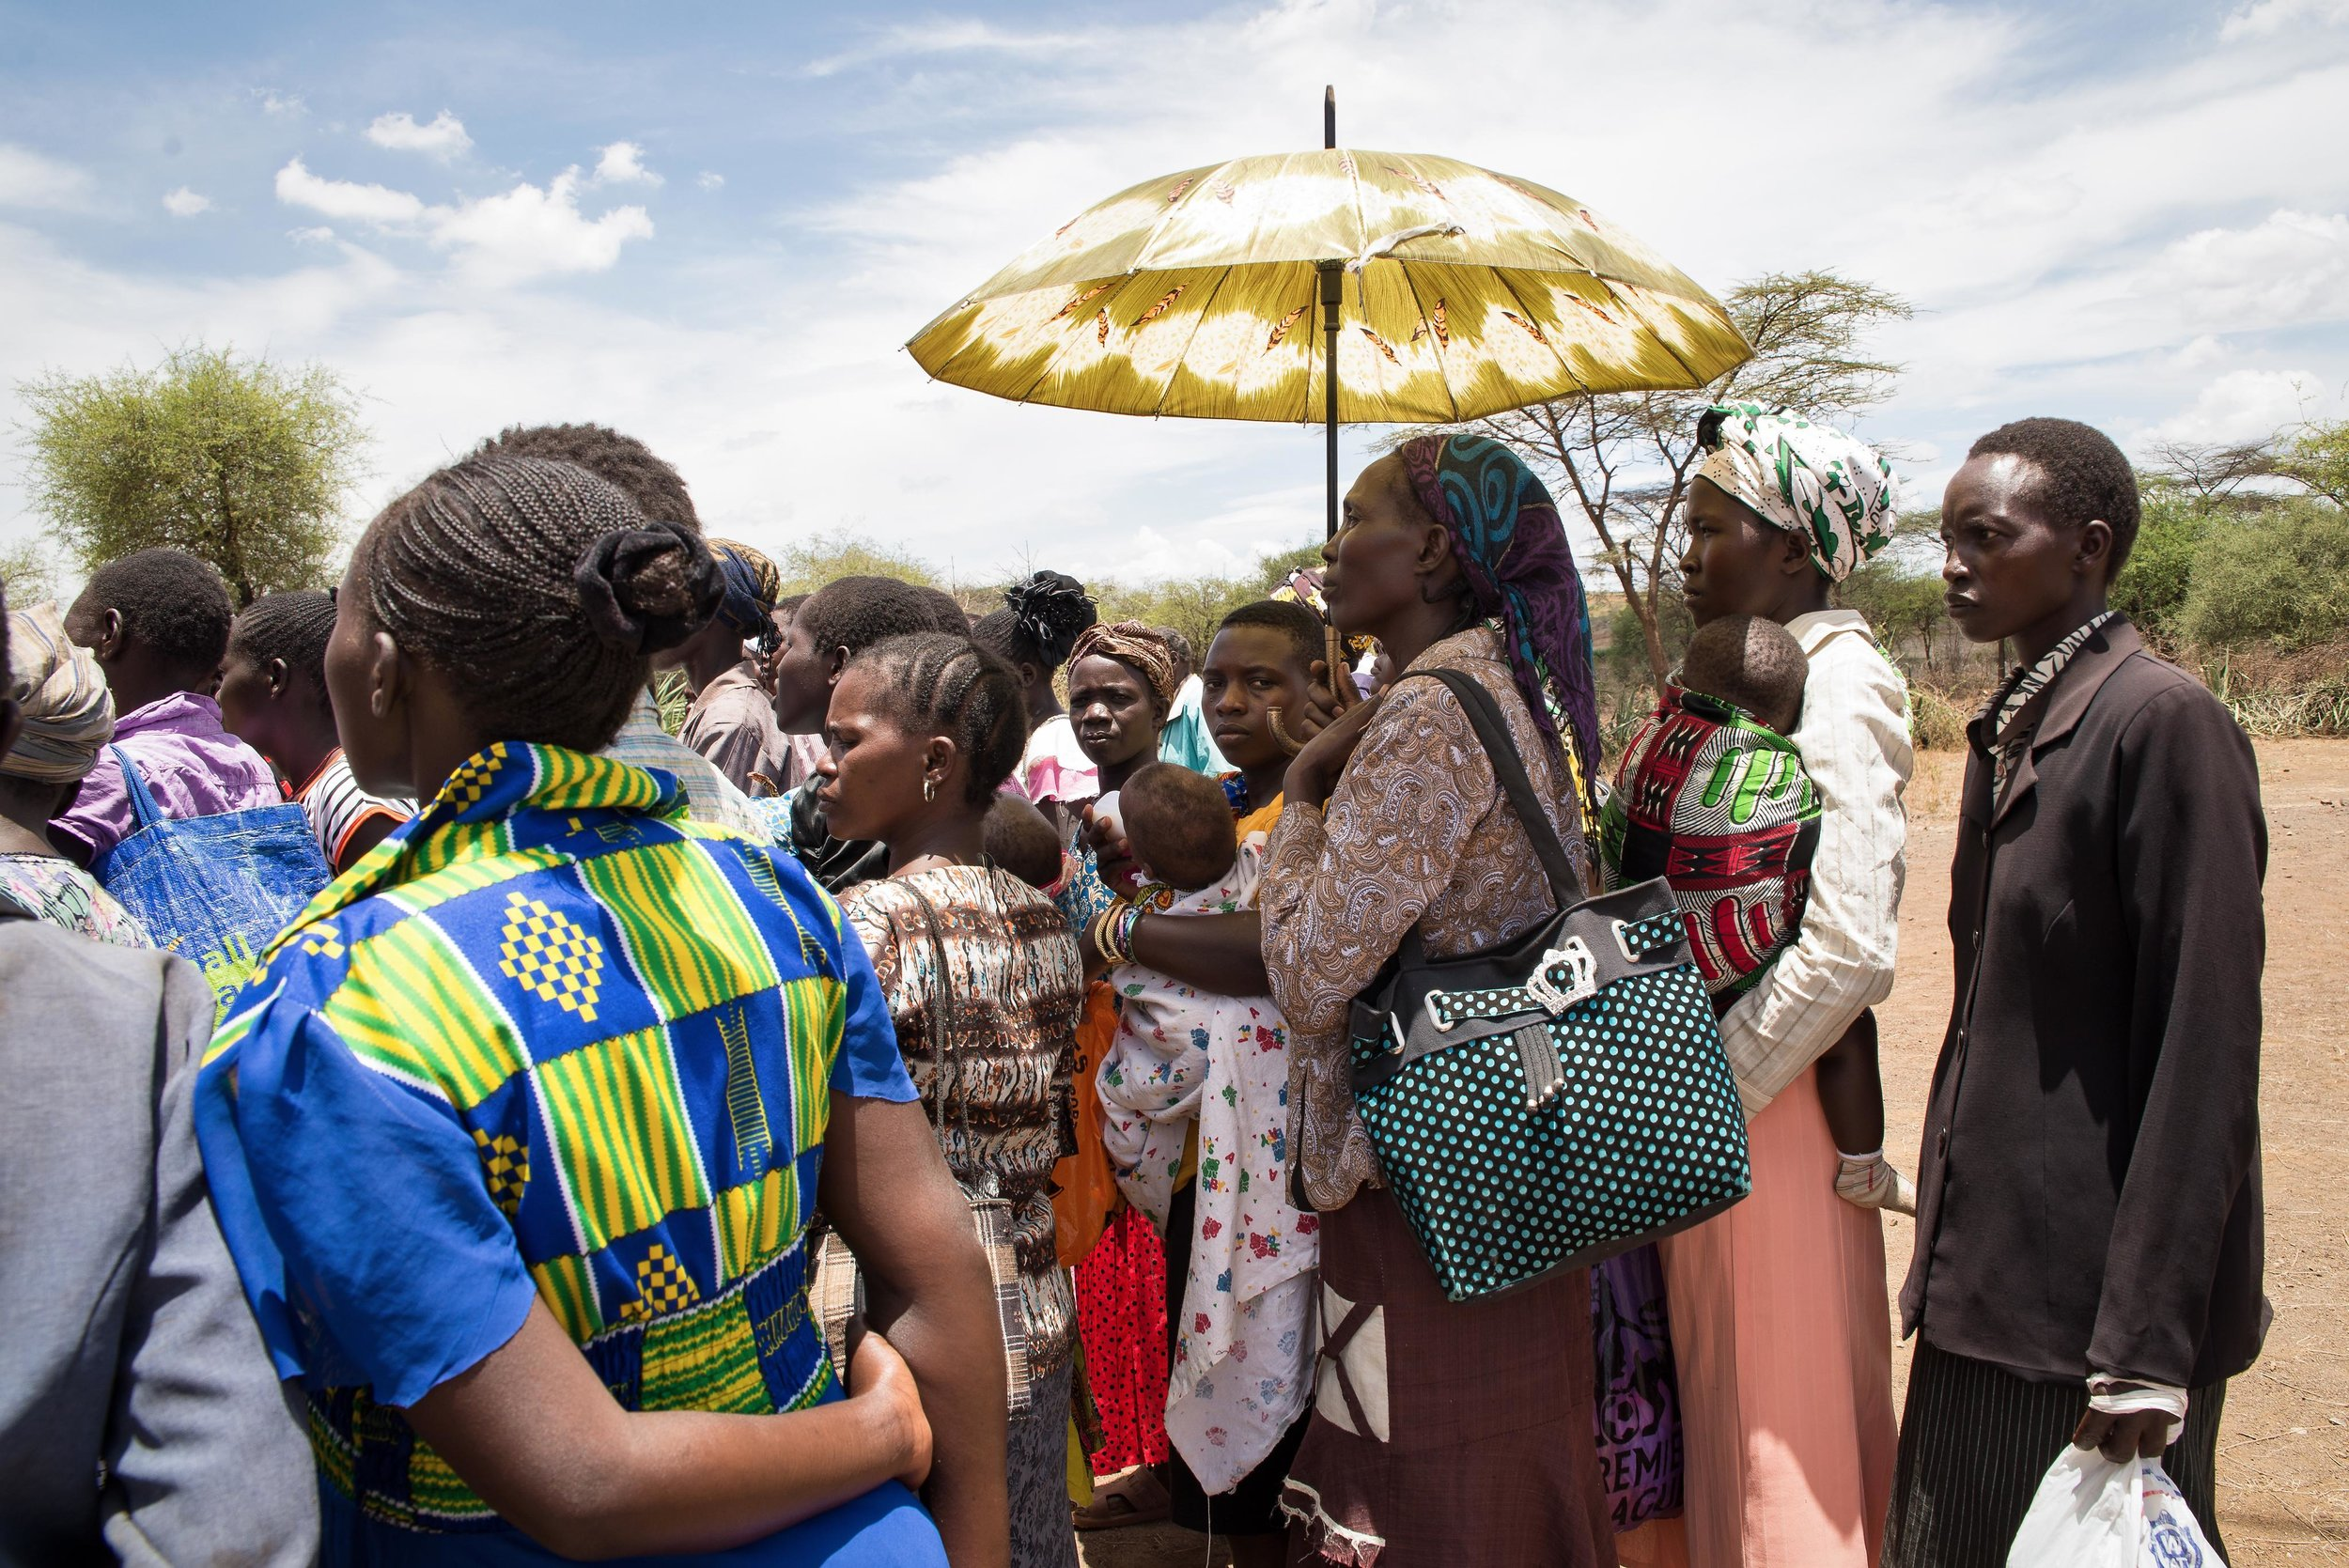 A crowd waits for emergency food relief at the African Inland Church in Mugurin, Kenya. 3 million people are in need of food assistance in Kenya, more than double the number in December 2016.